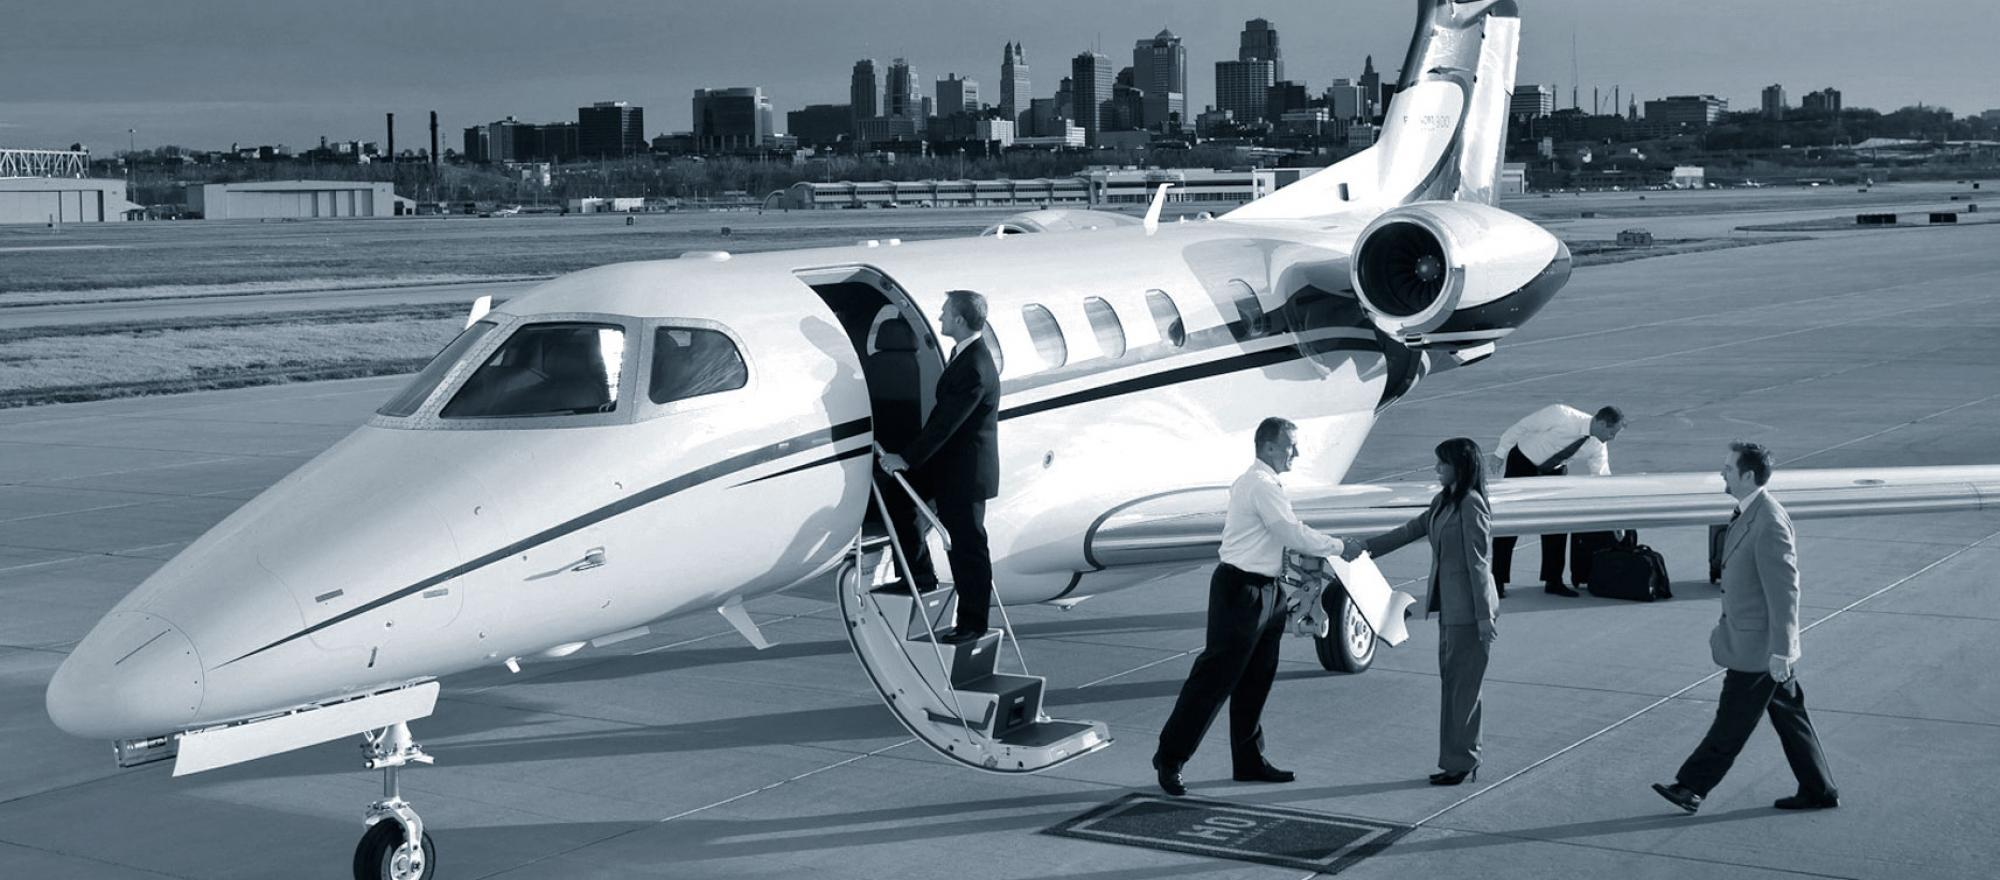 If you're thinking about acquiring a preowned aircraft, you couldn't ask for a better time, says Dennis Rousseau, founder of online listing service AircraftPost. (Photo: © 2010 Mike Fizer/Courtesy Executive AirShare)